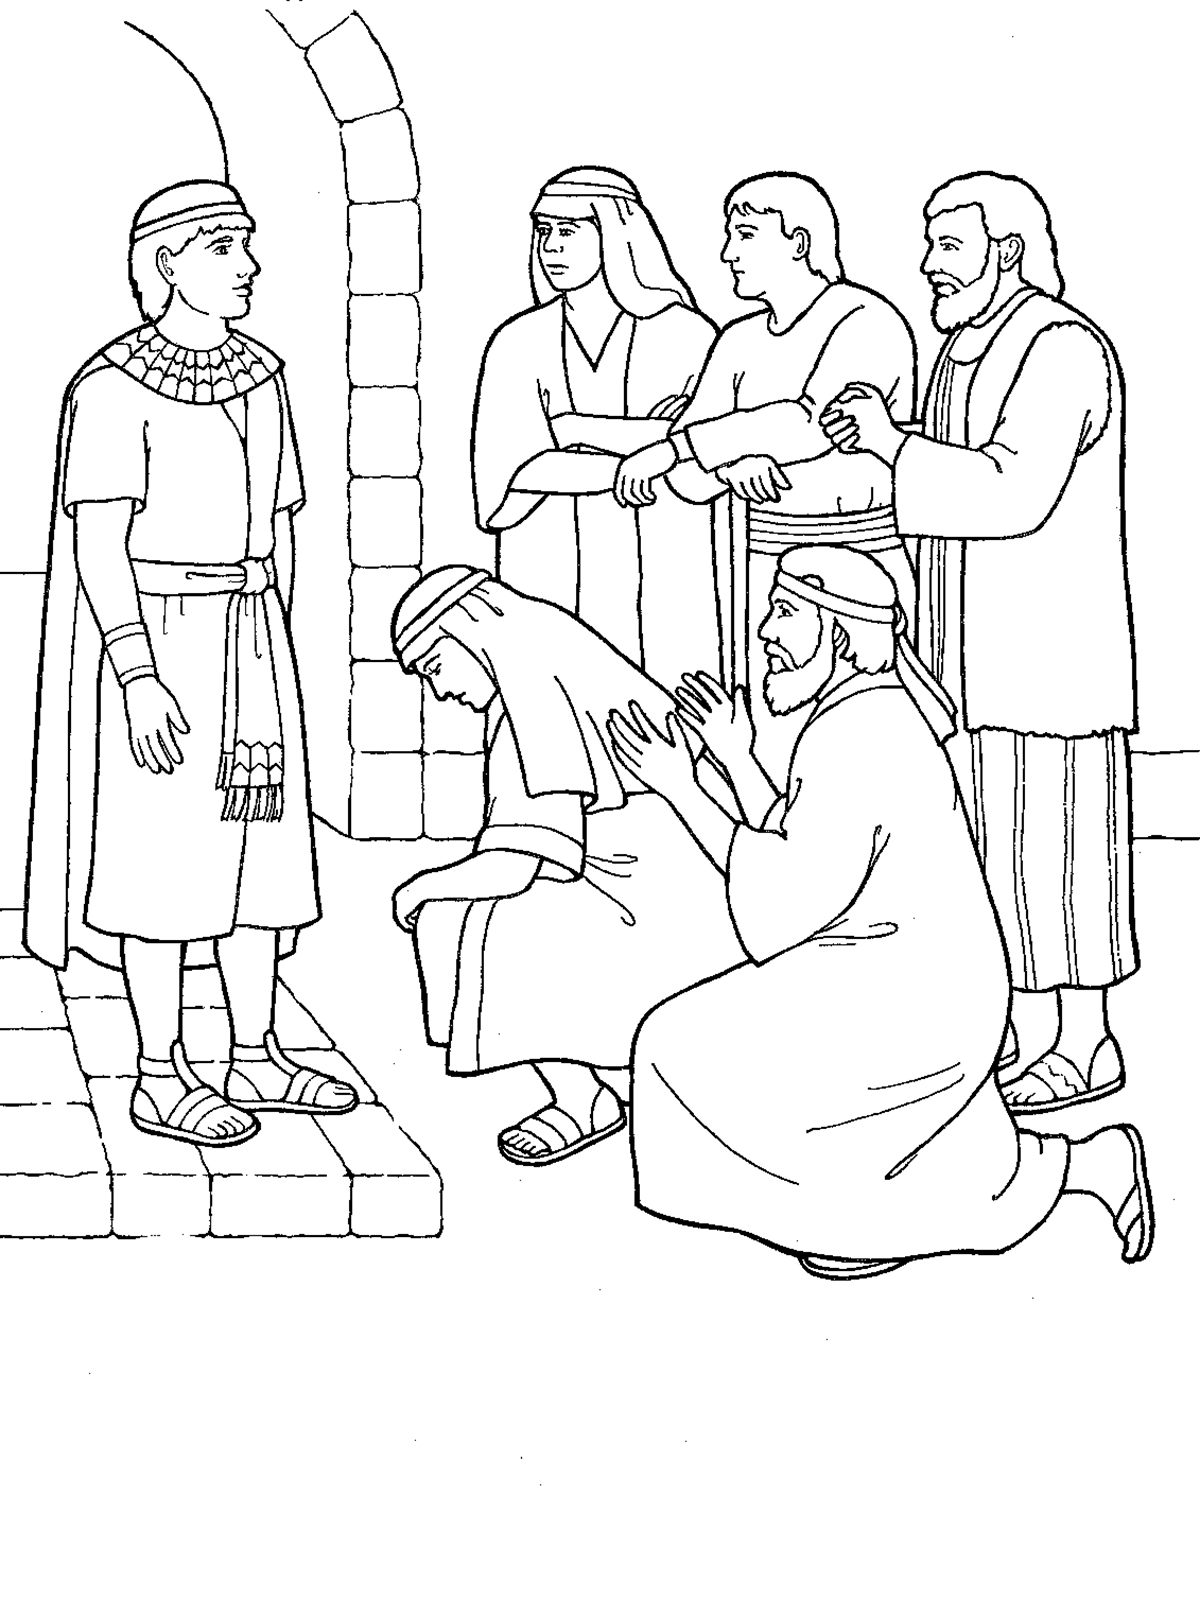 Forgiveness for Joseph in jail coloring page